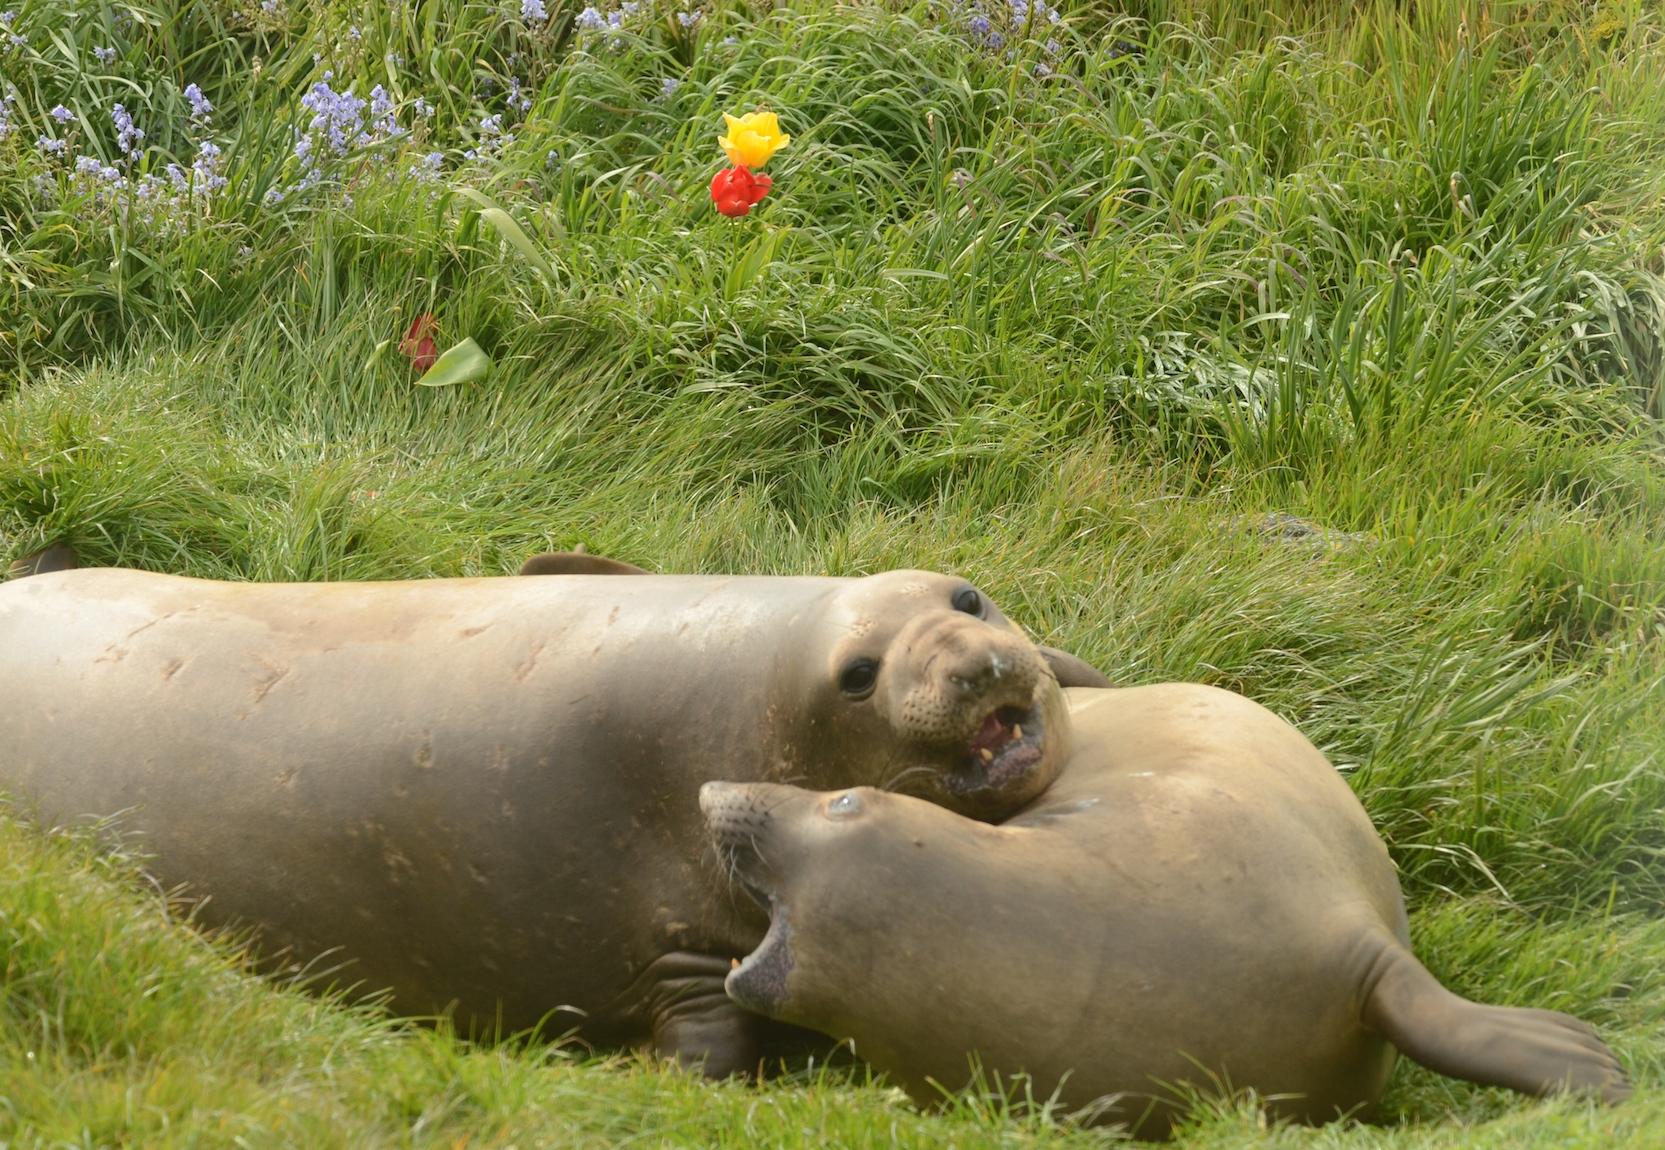 Male (left) and female Northern Elephant Seals romping in the grass.